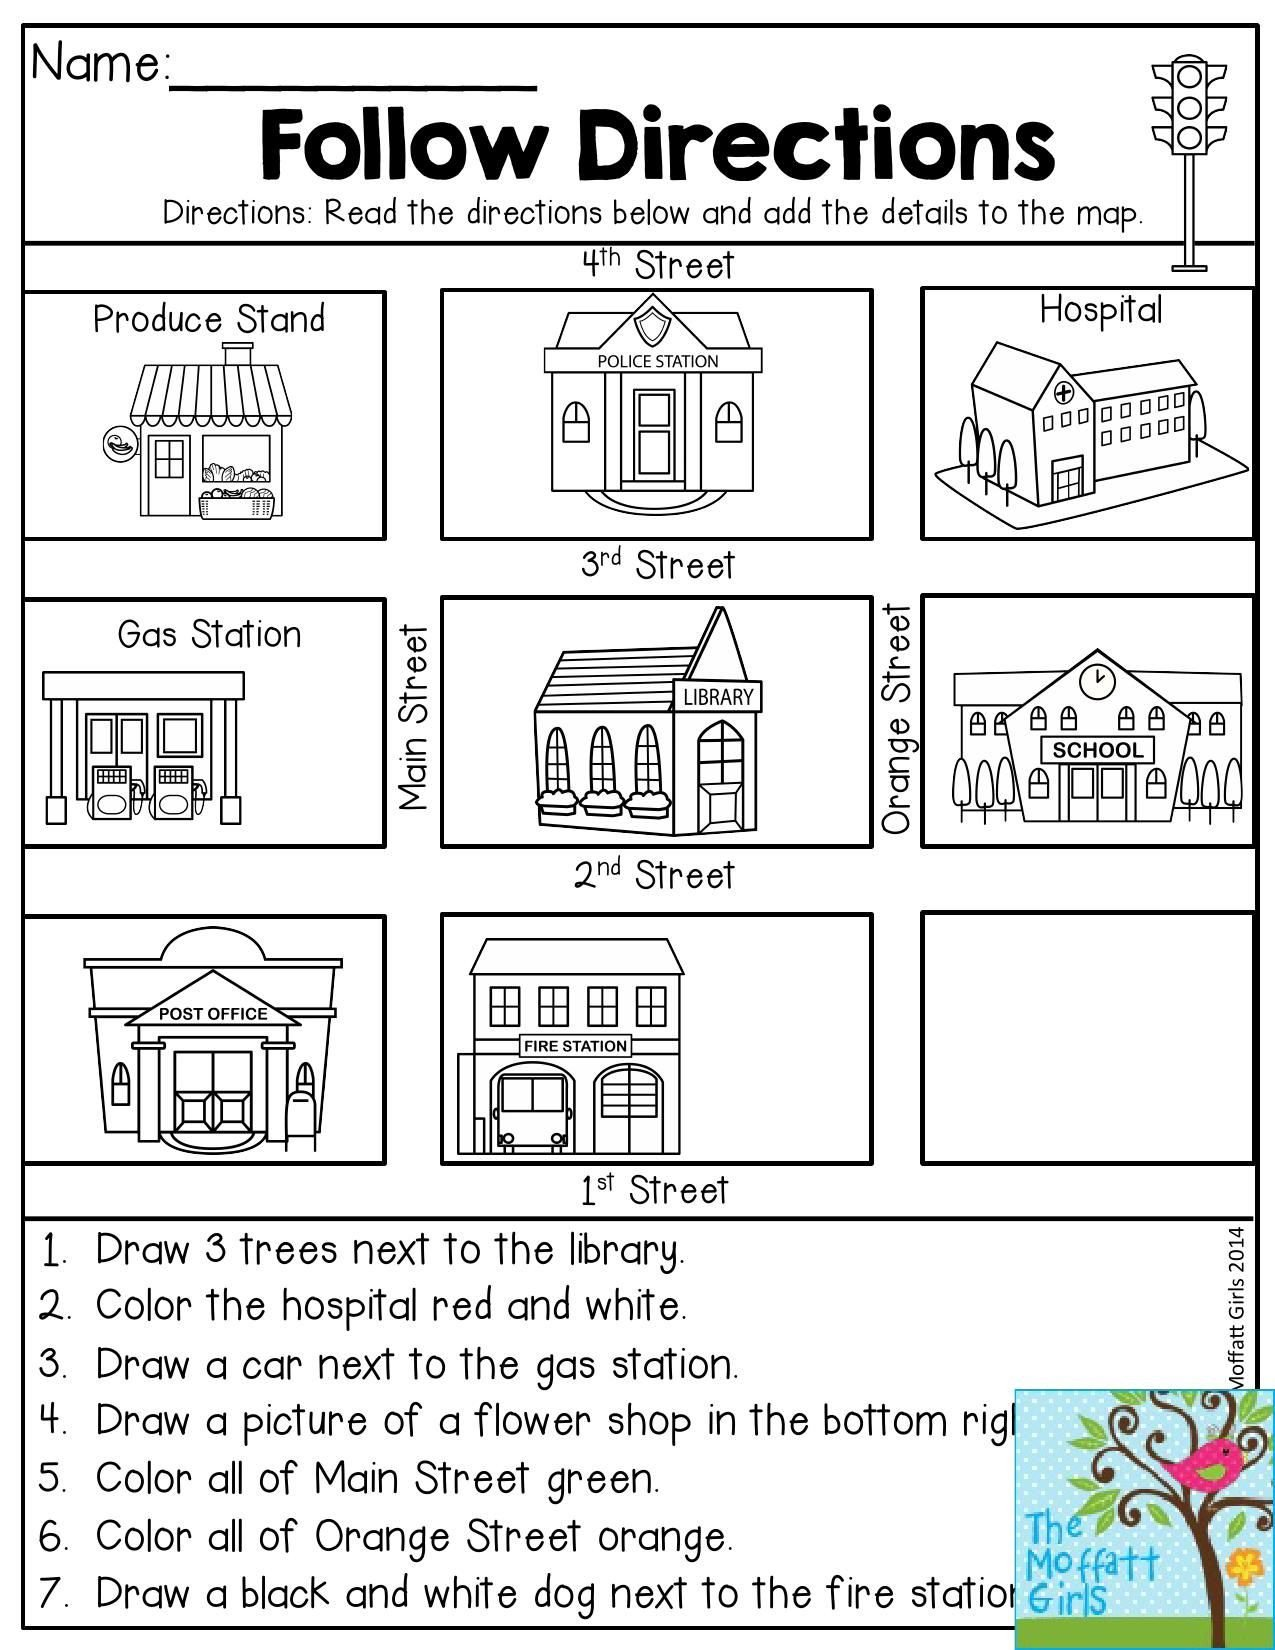 Map Worksheets 2nd Grade Follow Directions Read the Directions and Add the Details